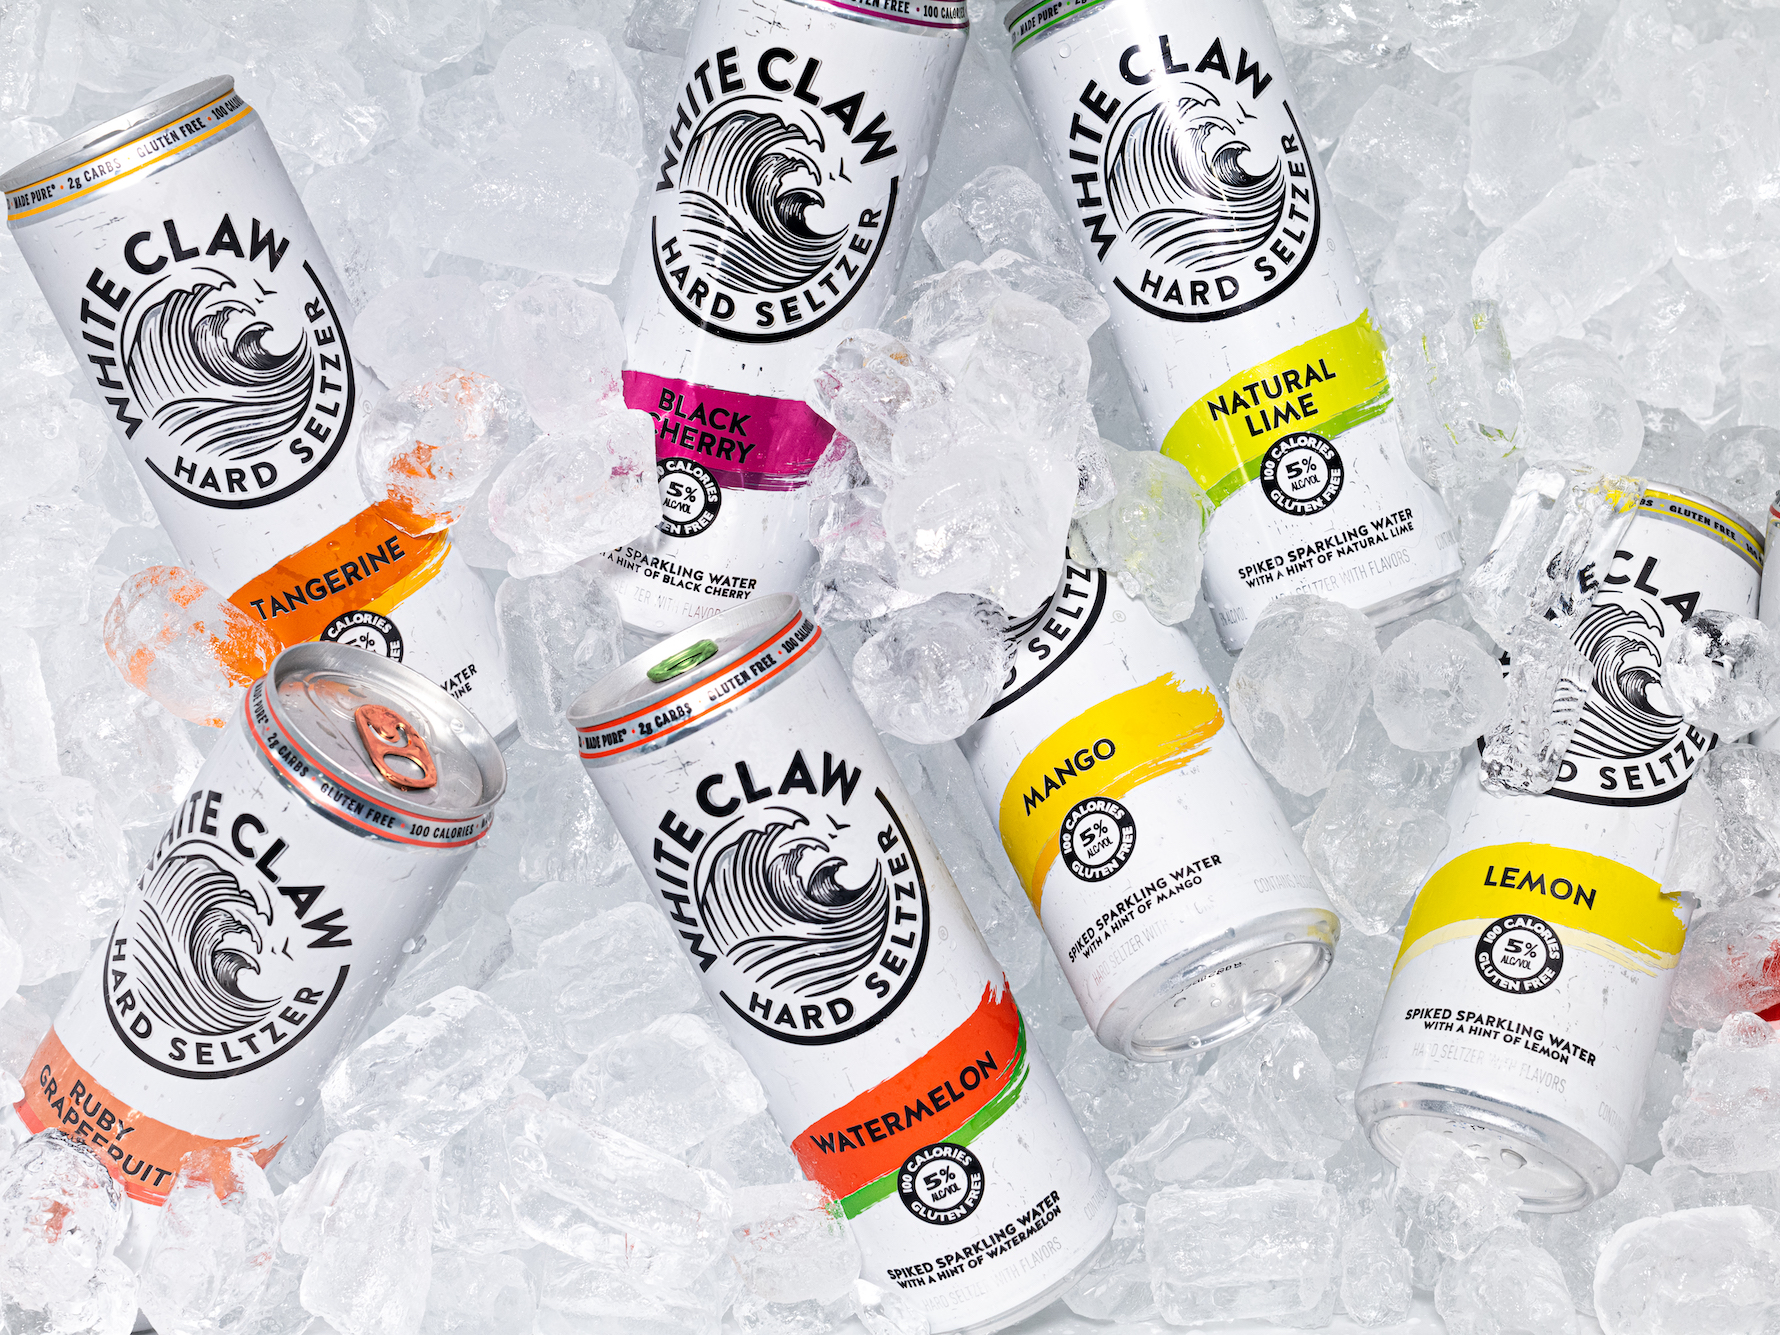 White Claw Just Launched 3 New Flavors As It Sets Its Sights On Another Summer Of Hard Seltzer Dominance White Claw In 2020 Slushies Hard Seltzer How To Make Drinks